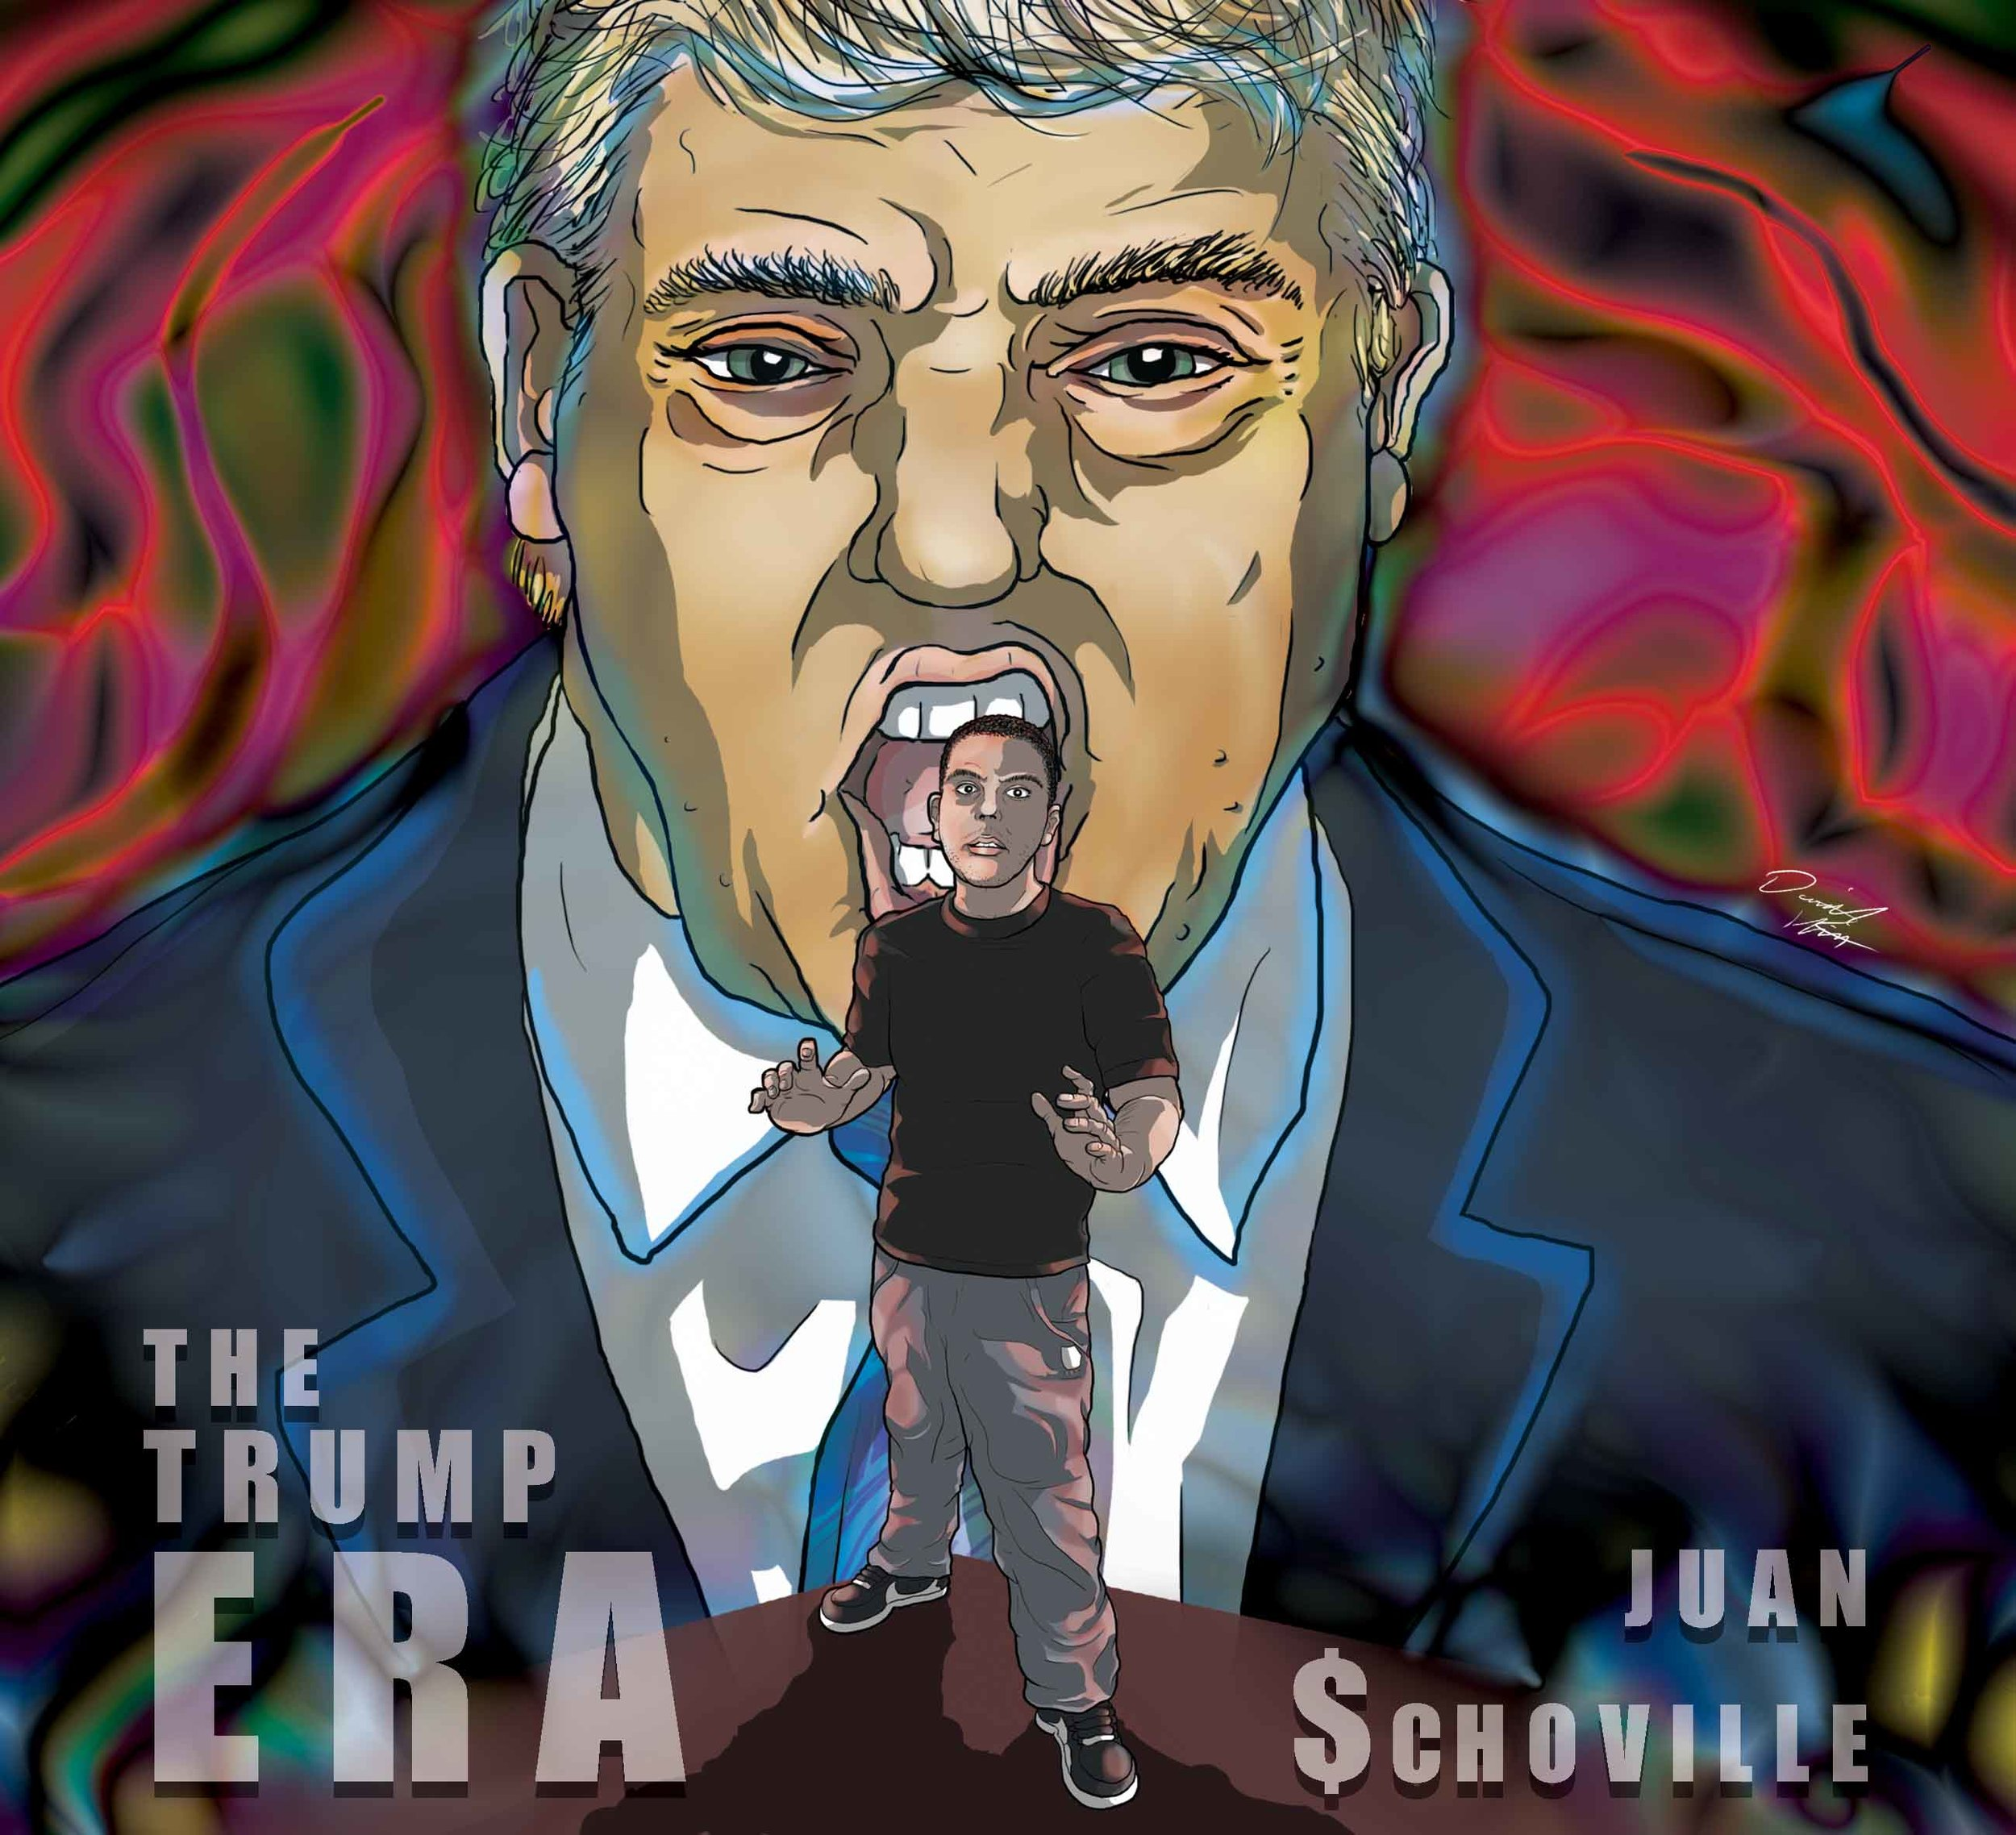 Political satire based cover art for upcoming album by AZ Hip Hop artist Juan $choville. First time doing a satirical piece, so faced some interesting challenges with this project.